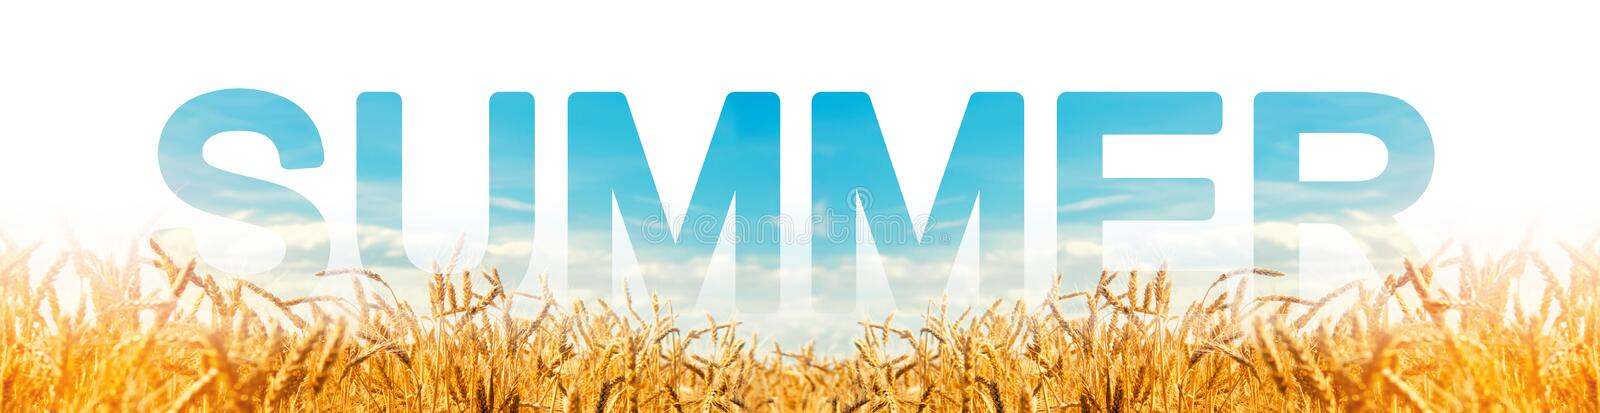 The word summer on the background of yellow wheat plantation field. Winter crops. Season of the year, active phase of growing. Harvest time. Beautiful view of royalty free stock photos